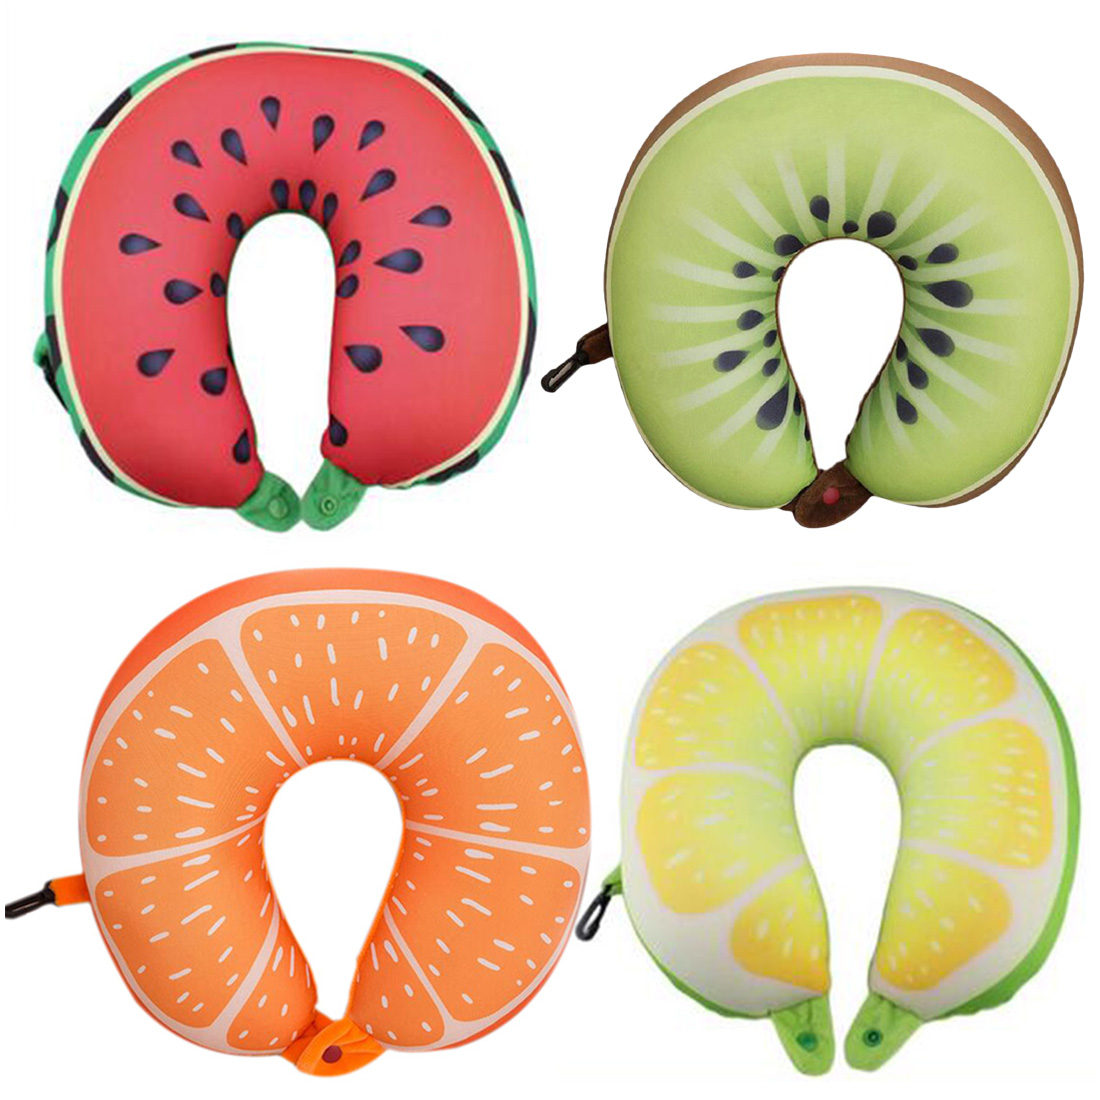 3D Fruit U Shaped Pillow Cushion Neck Protection Soft Car Airplane Travel Massage Pillow Neck Support Cushion image